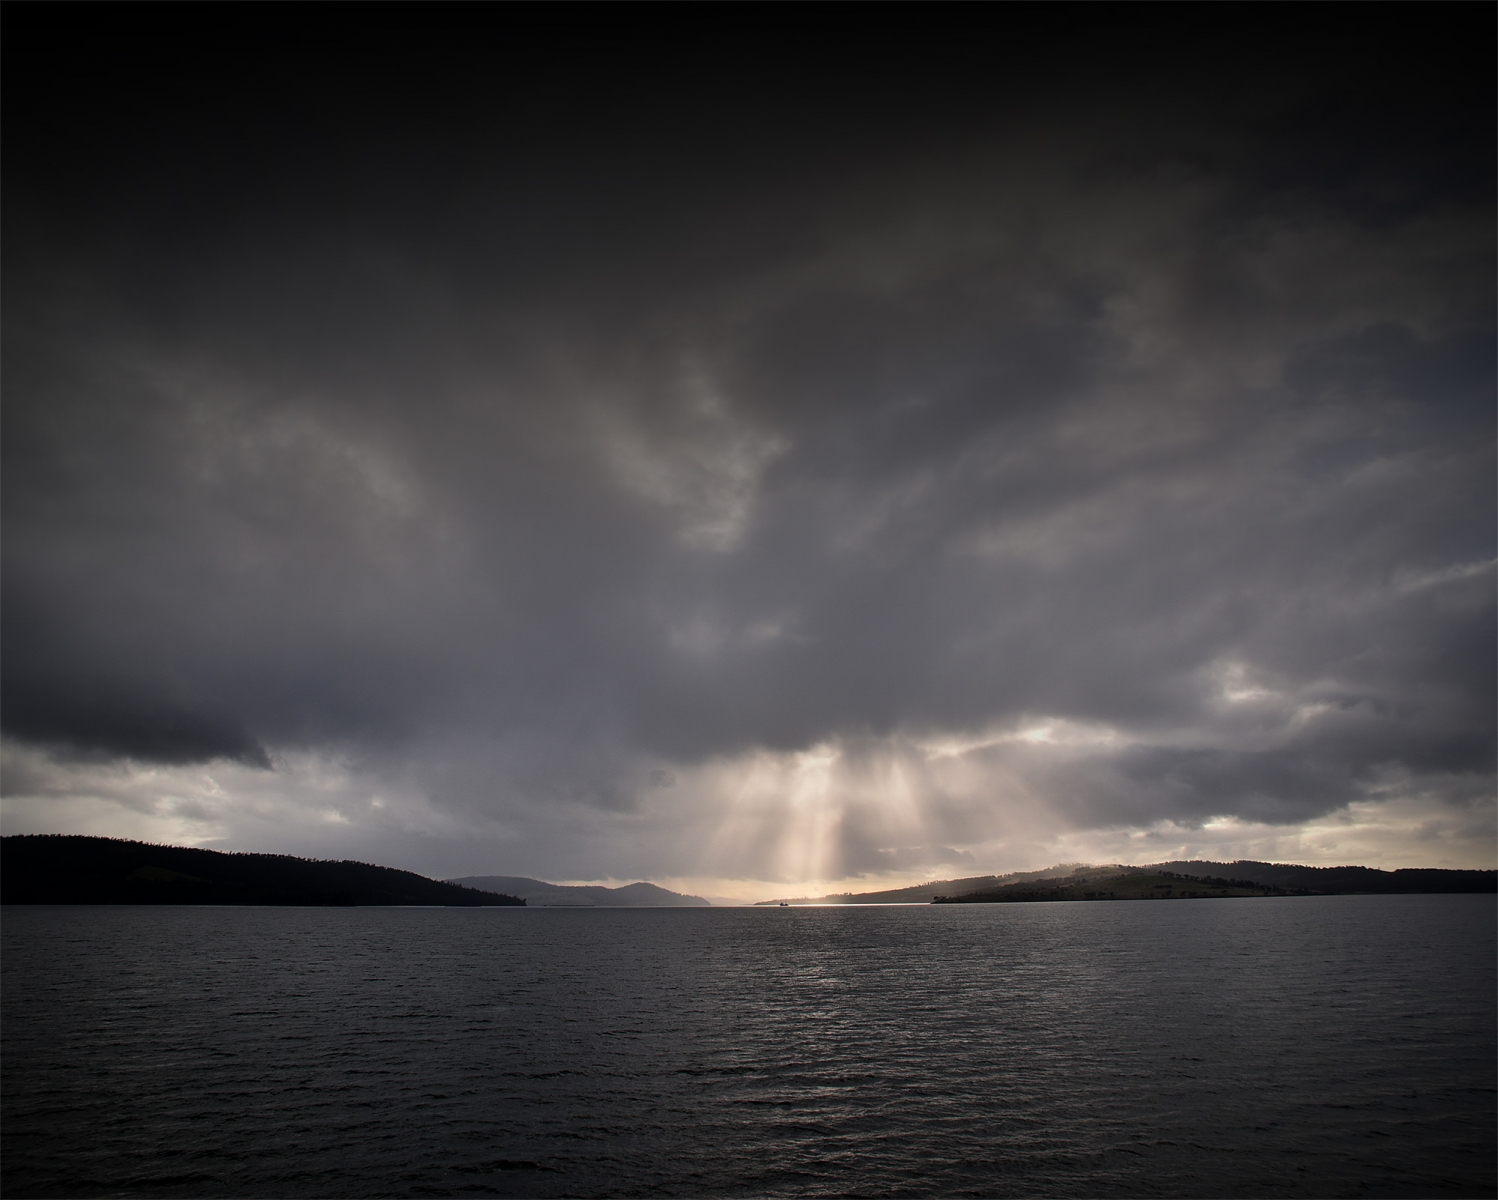 View of light breaking through clouds on the d'Entrecasteaux Channel, from the Bruny Island ferry.